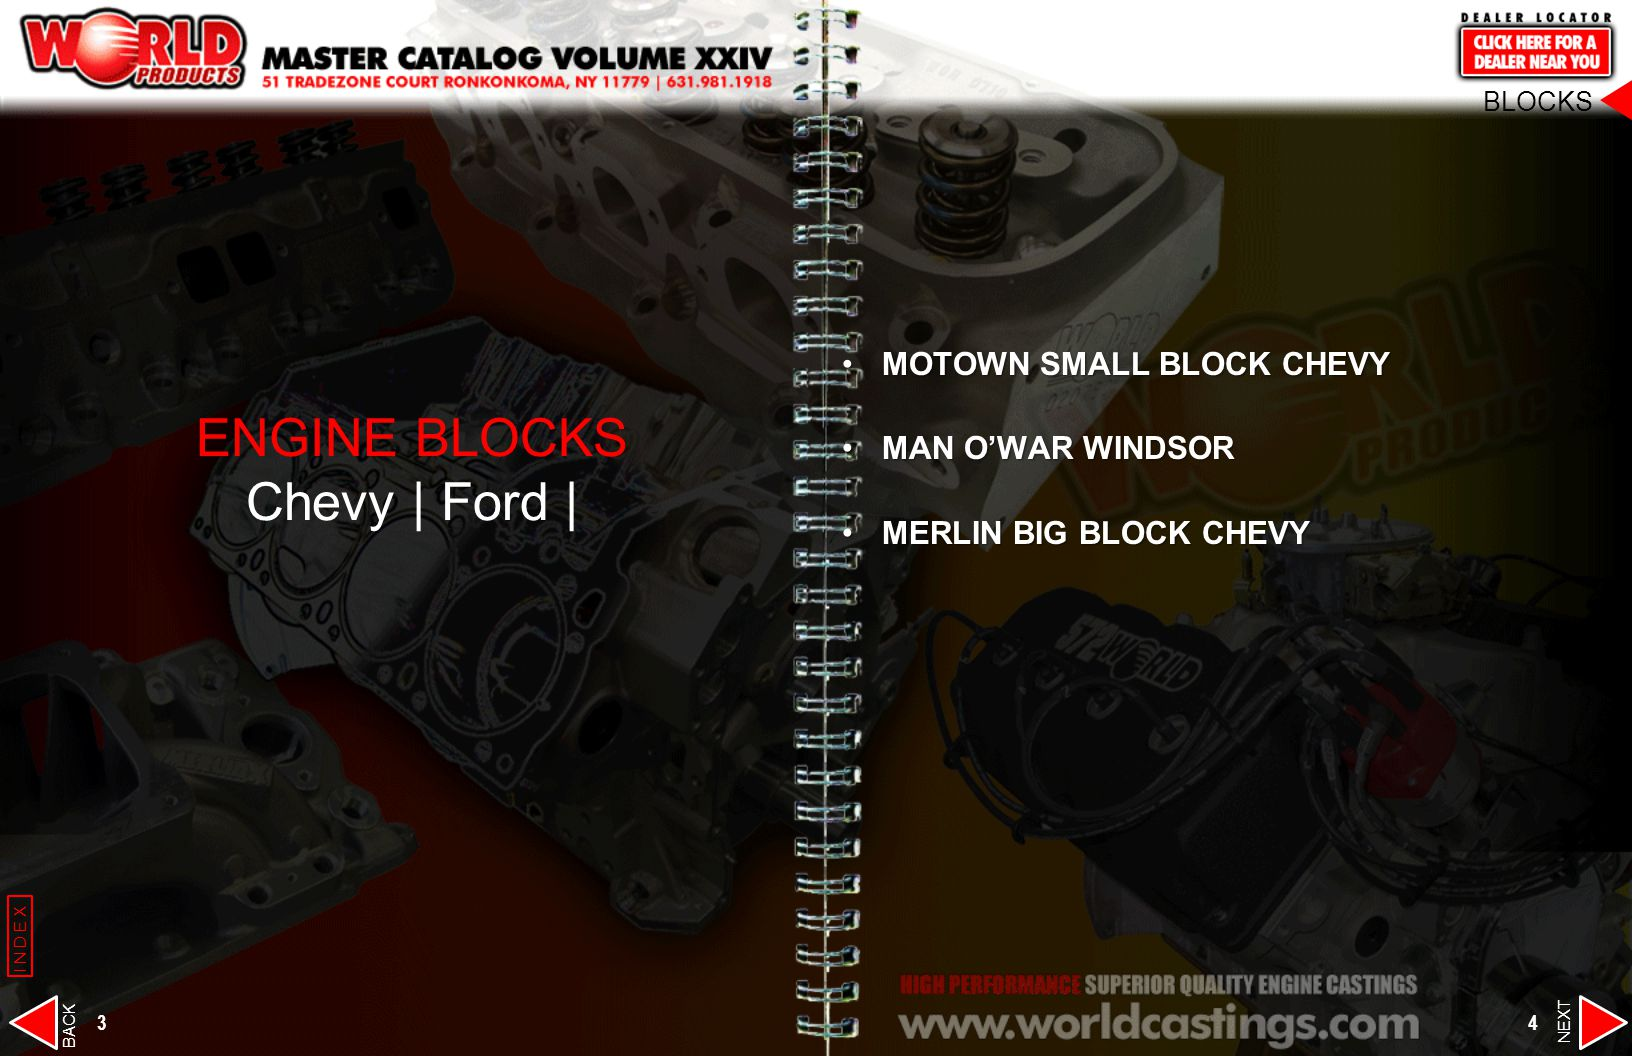 ENGINE BLOCKS Chevy | Ford |